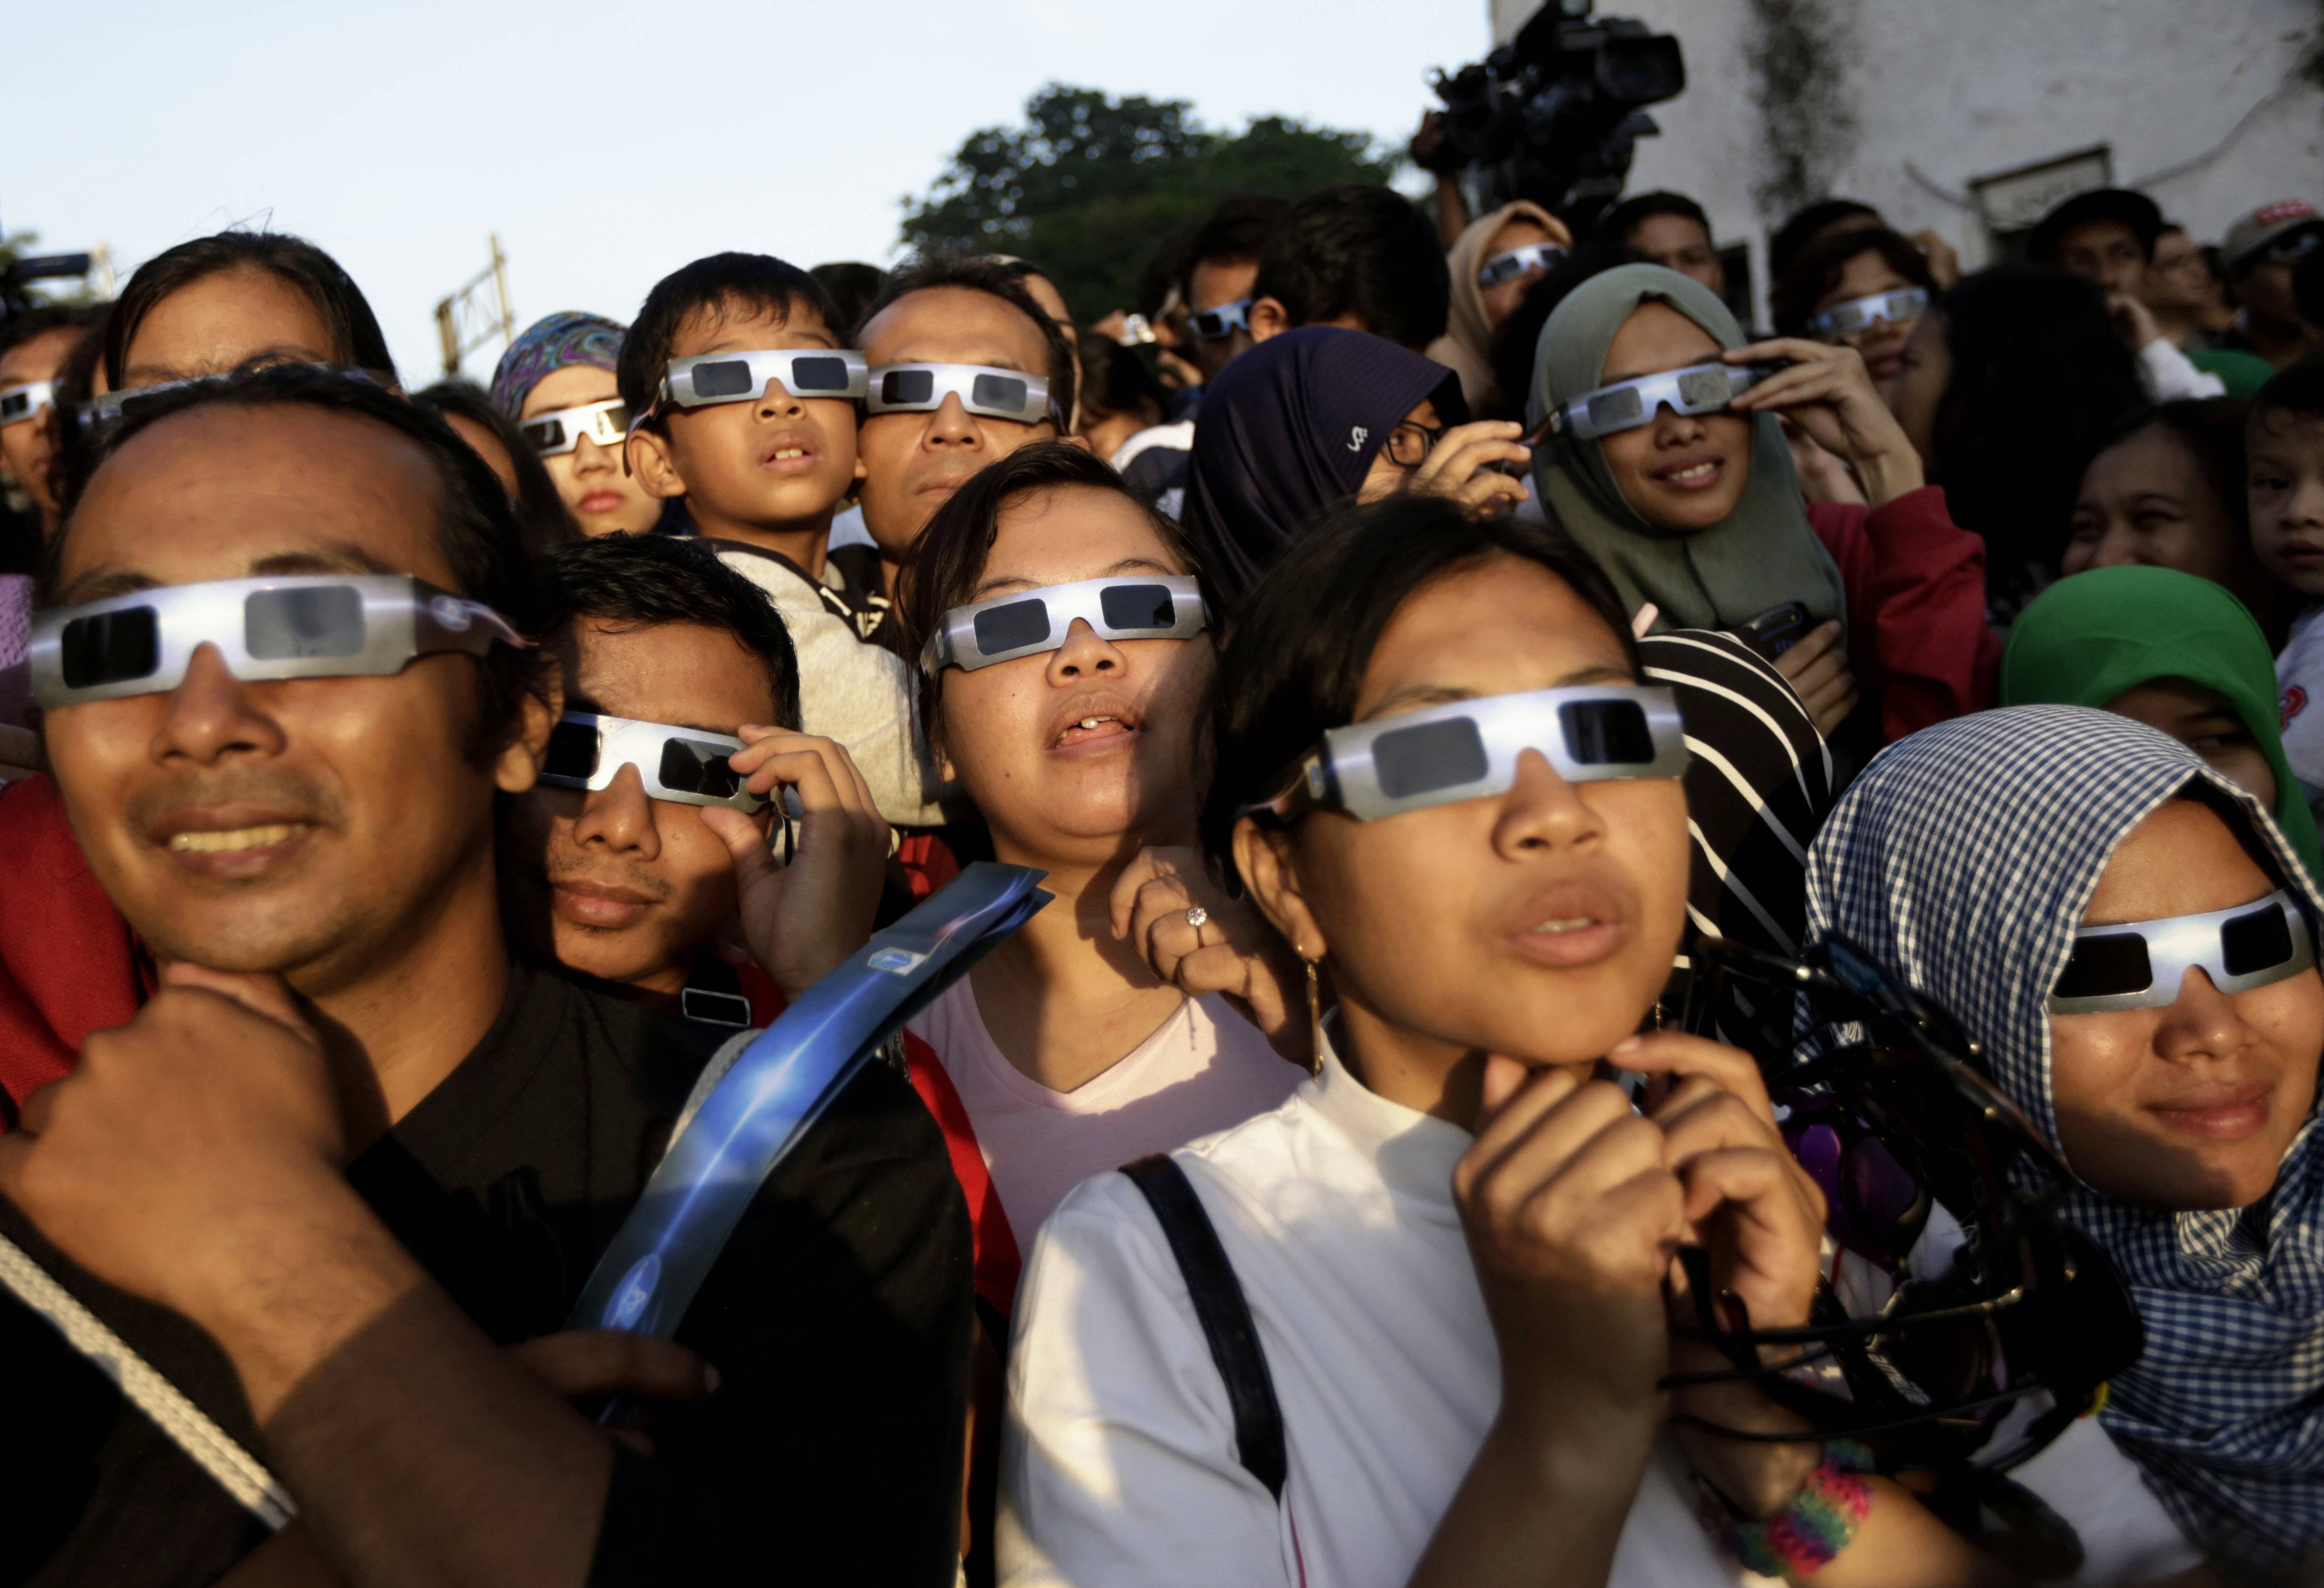 People wearing protective glasses look up at the sun to watch a 2016 solar eclipse in Jakarta, Indonesia. Doctors say not to look at the sun without eclipse glasses or other certified filters except during the two minutes or so when the moon completely blots out the sun, called totality.